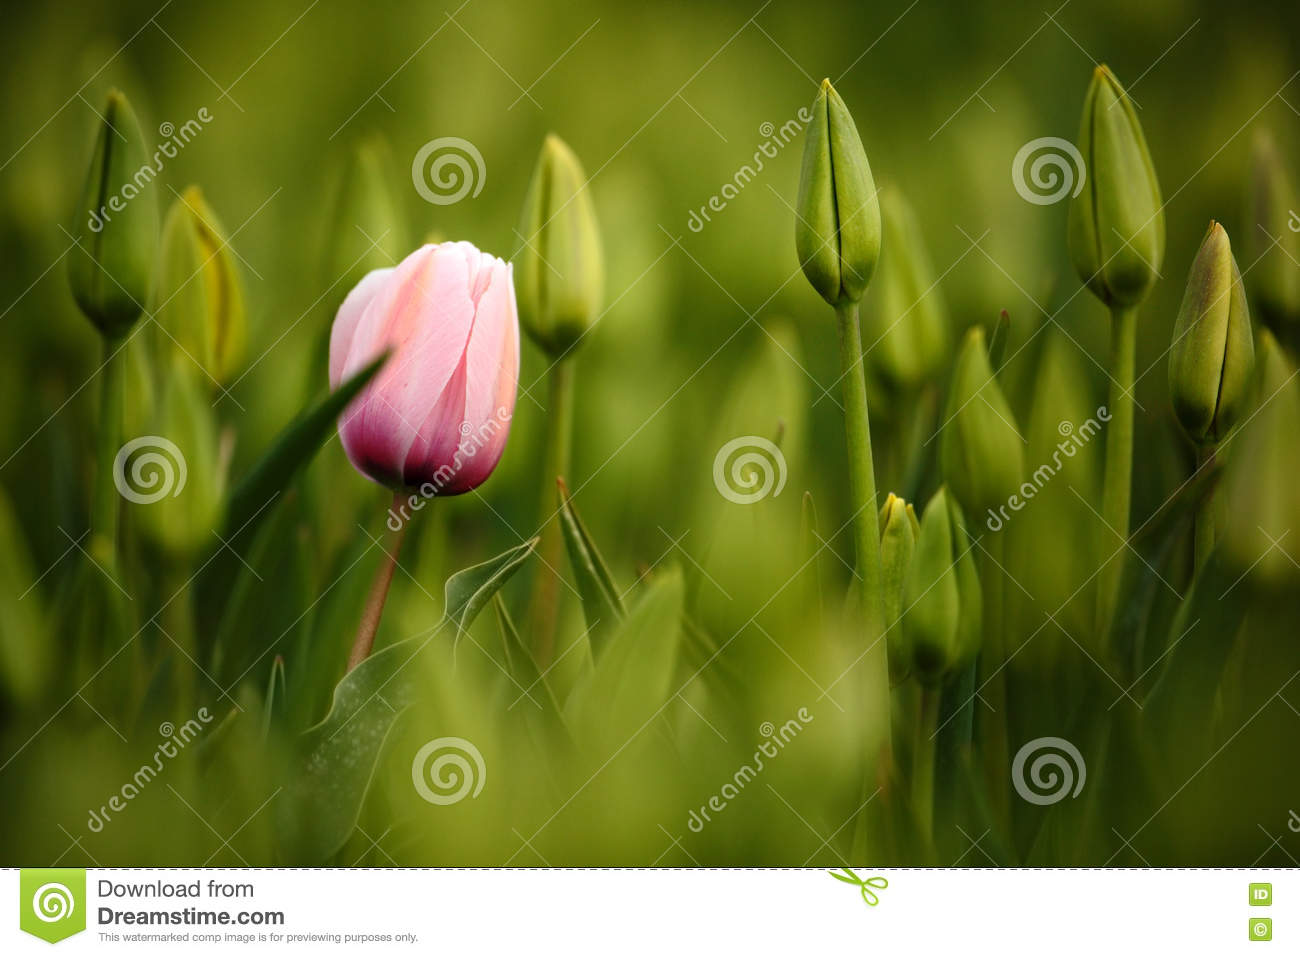 Pink tulip bloom, red beautiful tulips field in spring time with sunlight, floral background, garden scene, Holland, Netherlands